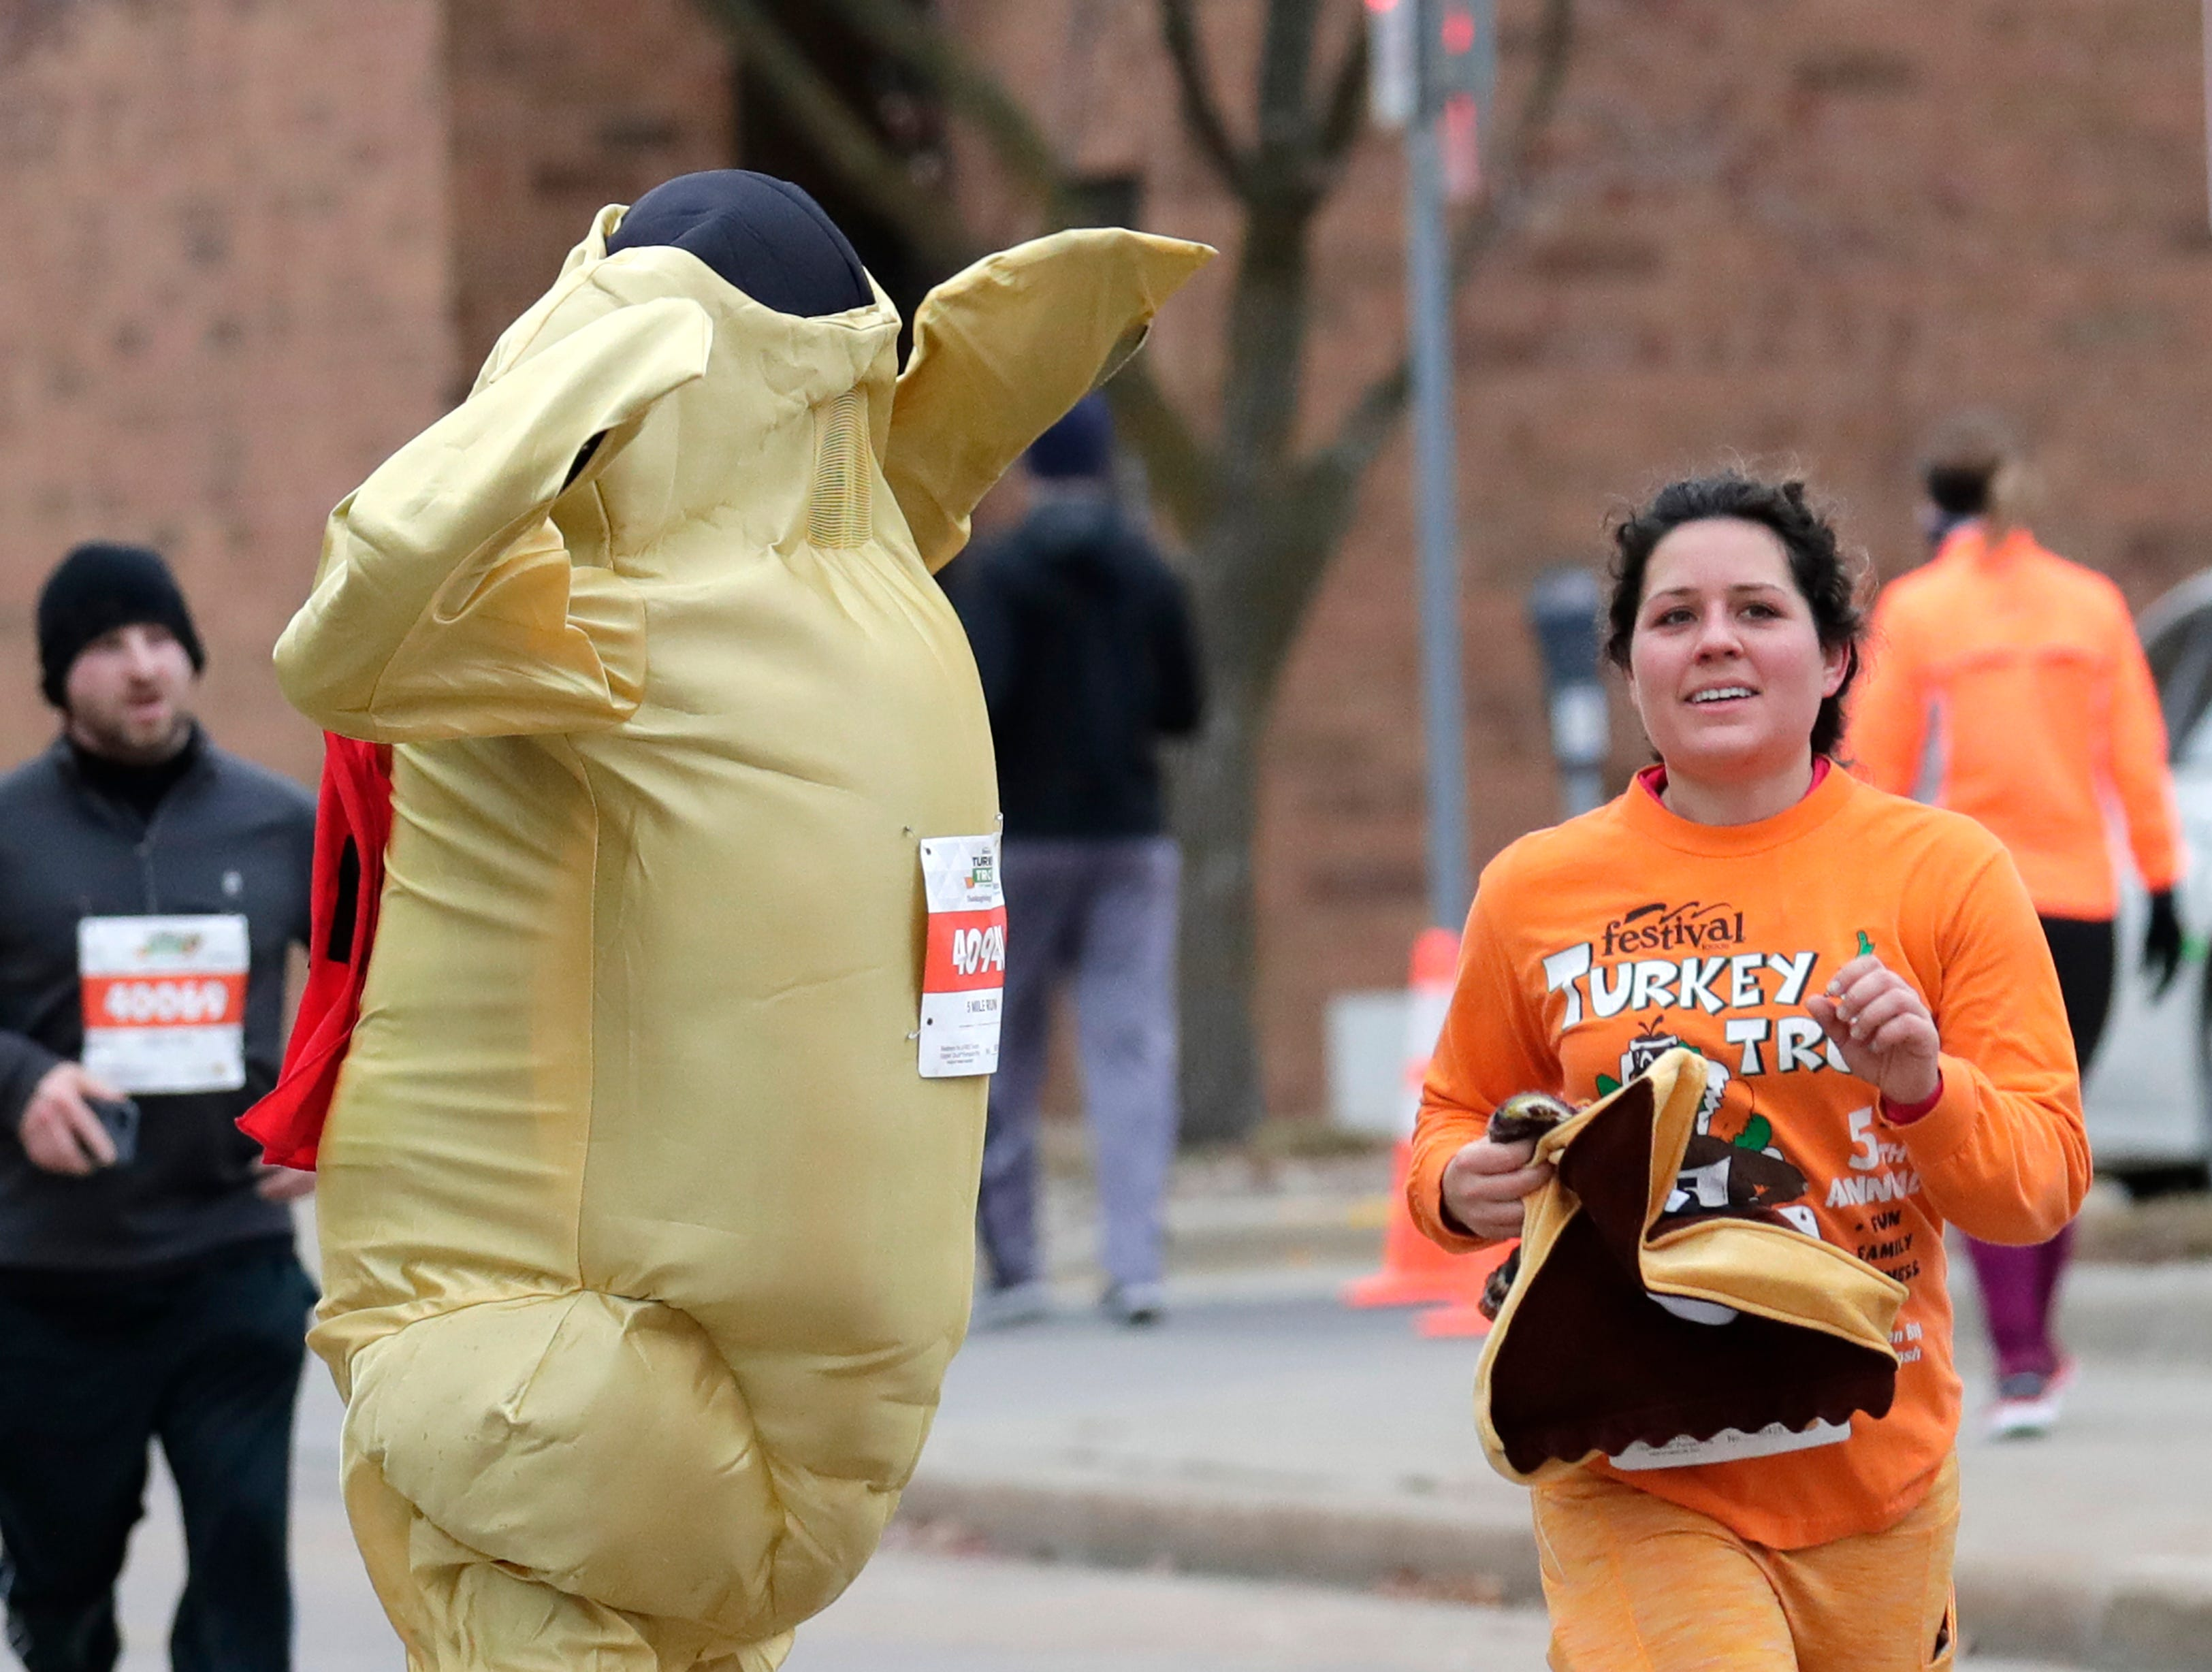 People participate in the 11th Annual Festival Foods Turkey Trot Thursday, November 22, 2018, in Appleton, Wis. Dan Powers/USA TODAY NETWORK-Wisconsin